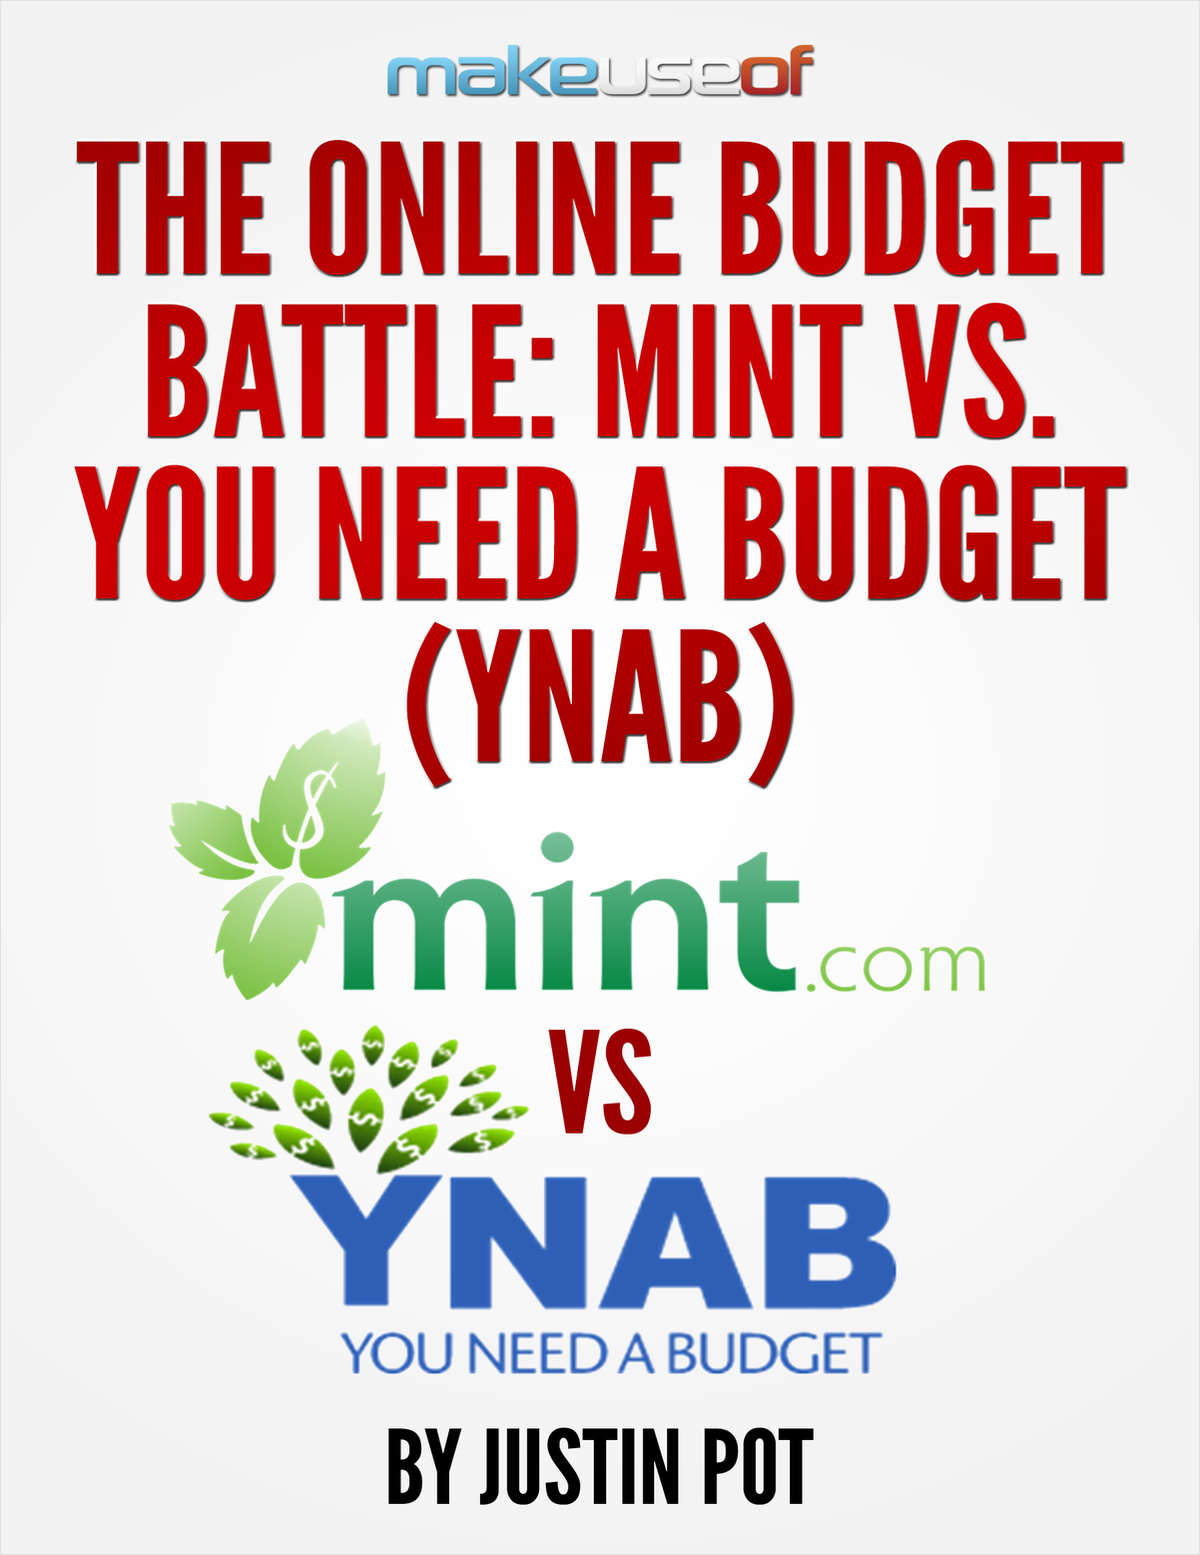 The Online Budget Battle: Mint vs. You Need a Budget (YNAB)